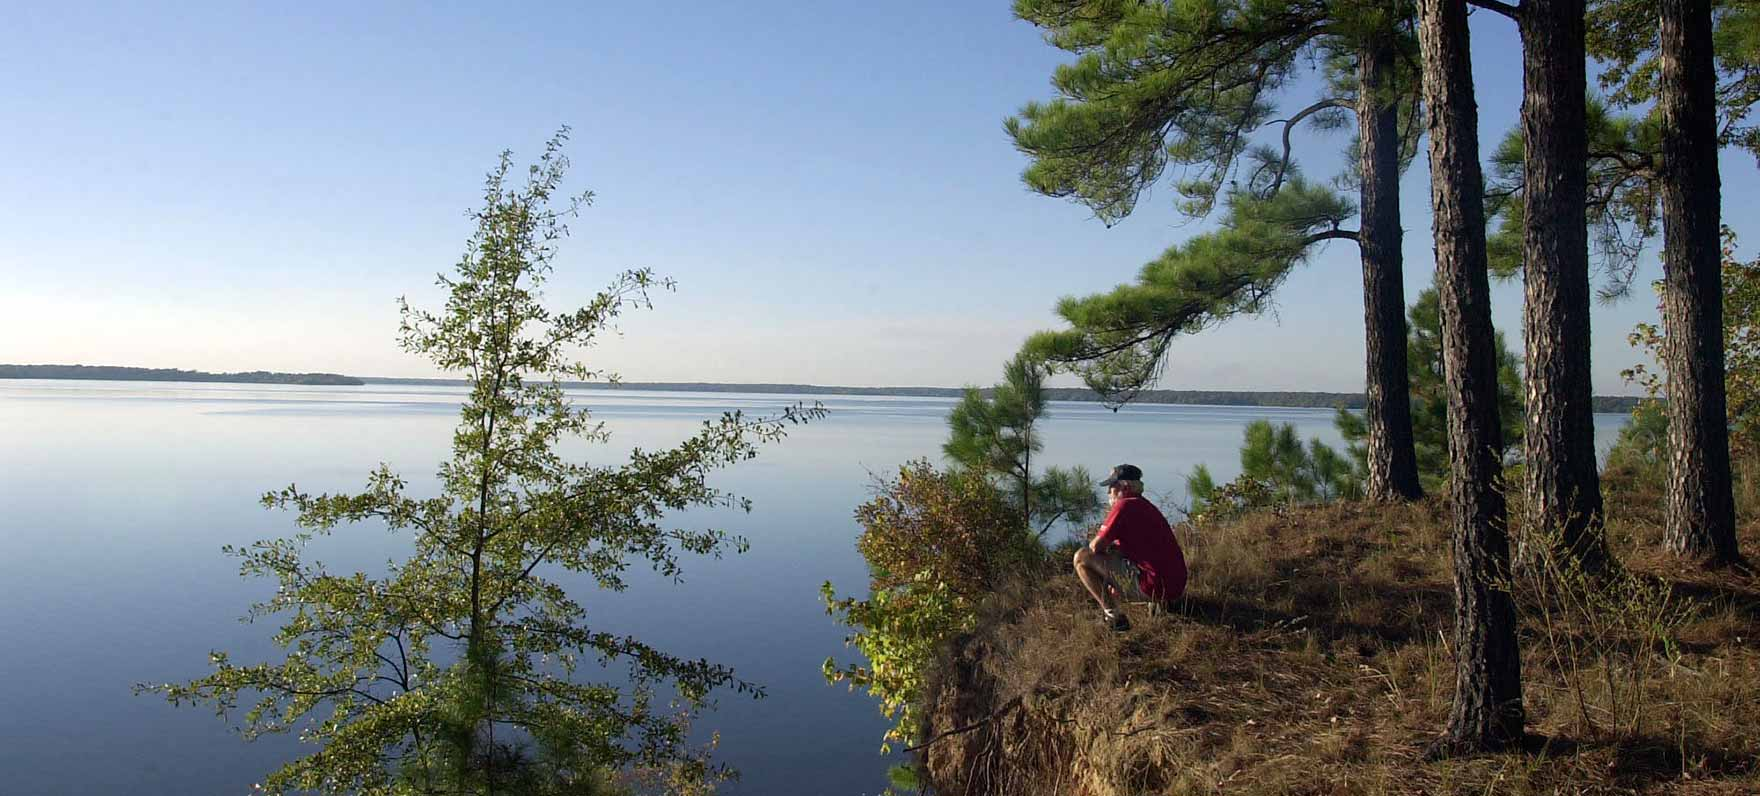 Historic wagon traces and an 1800s ferry crossing are reminders of early settlers of the area. The fishing pretty is historic too, with 75-pound catfish in Wright Patman Lake.